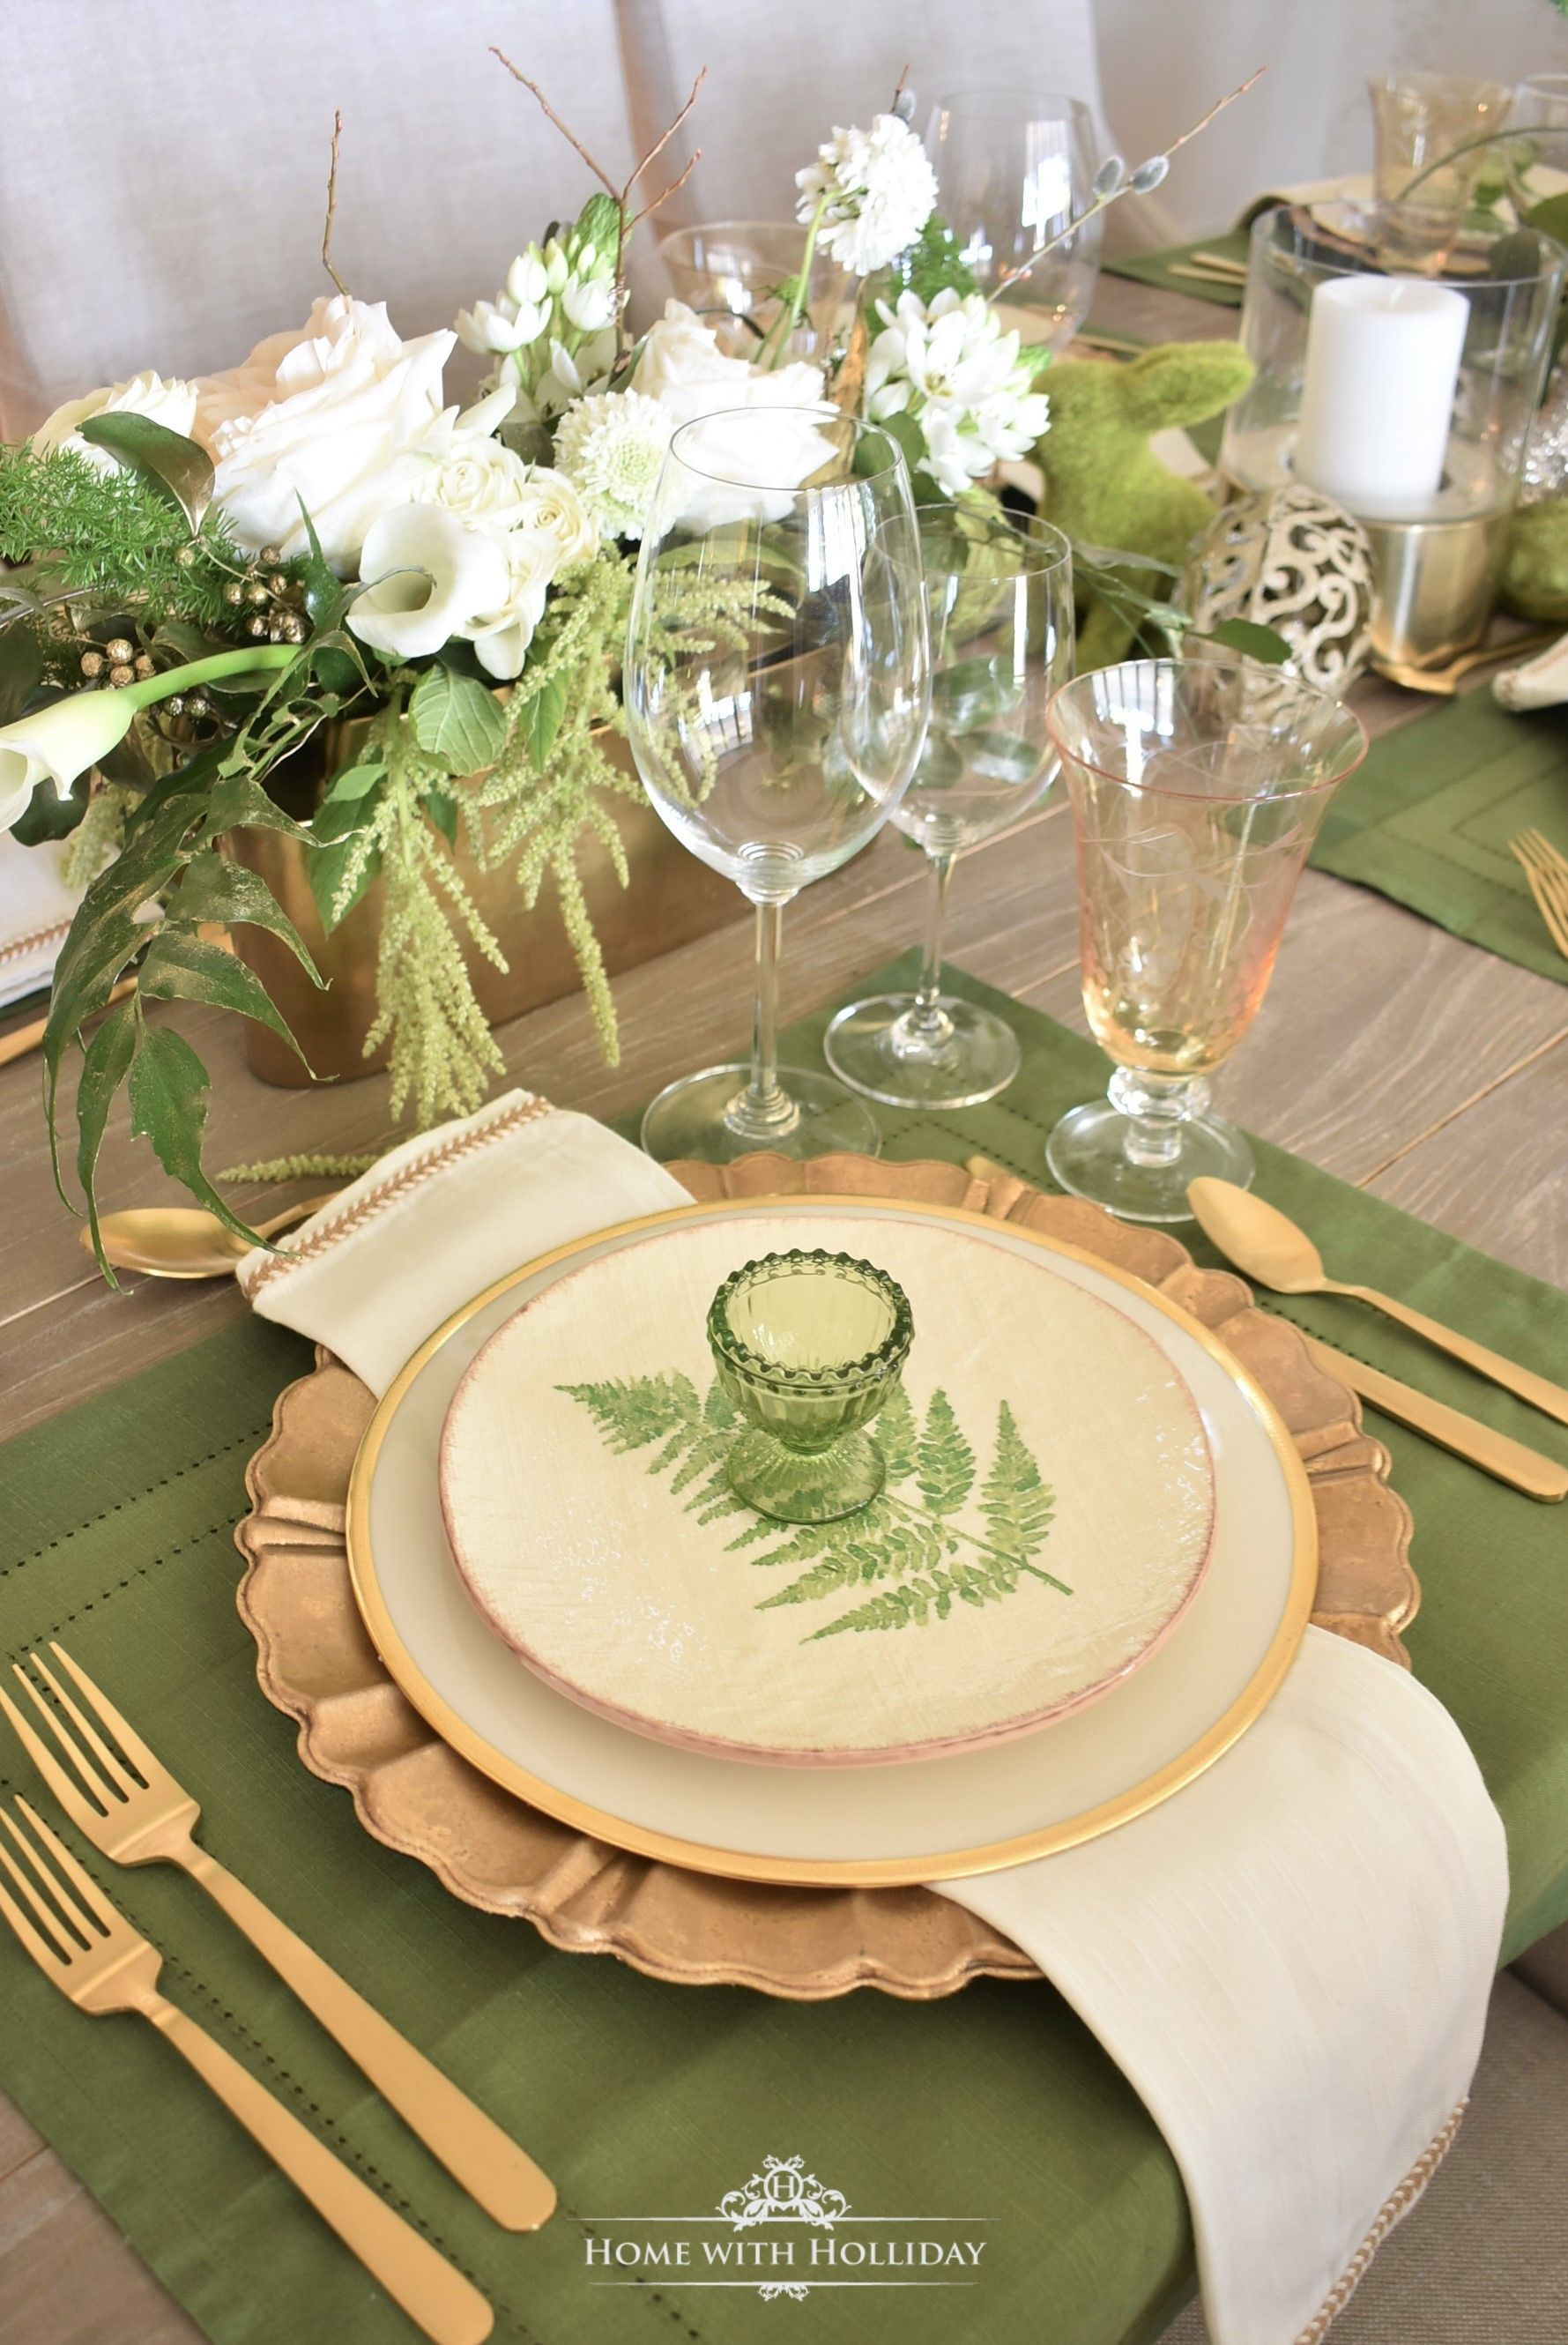 Dinner Table Decor Everyday Gold Table Settings Everyday Gold Dinners Dinnertoni In 2020 Easter Table Settings Shabby Chic Table Settings Table Settings Everyday